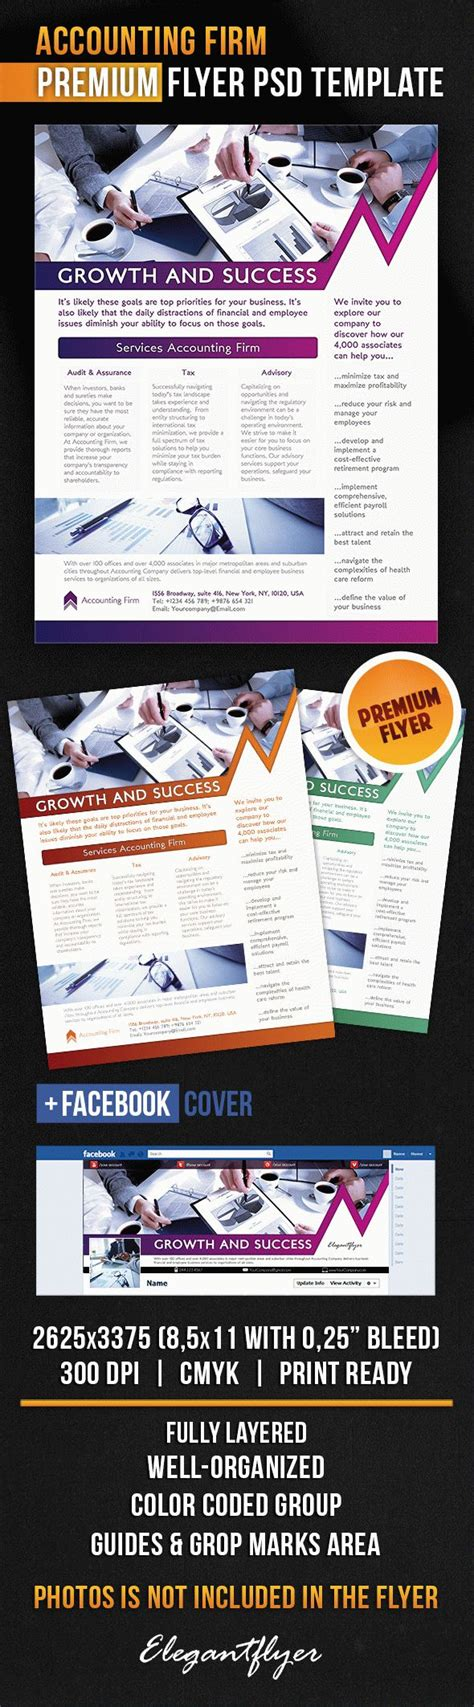 Accounting Firm Flyer Psd Template By Elegantflyer Free Accounting Flyers Templates